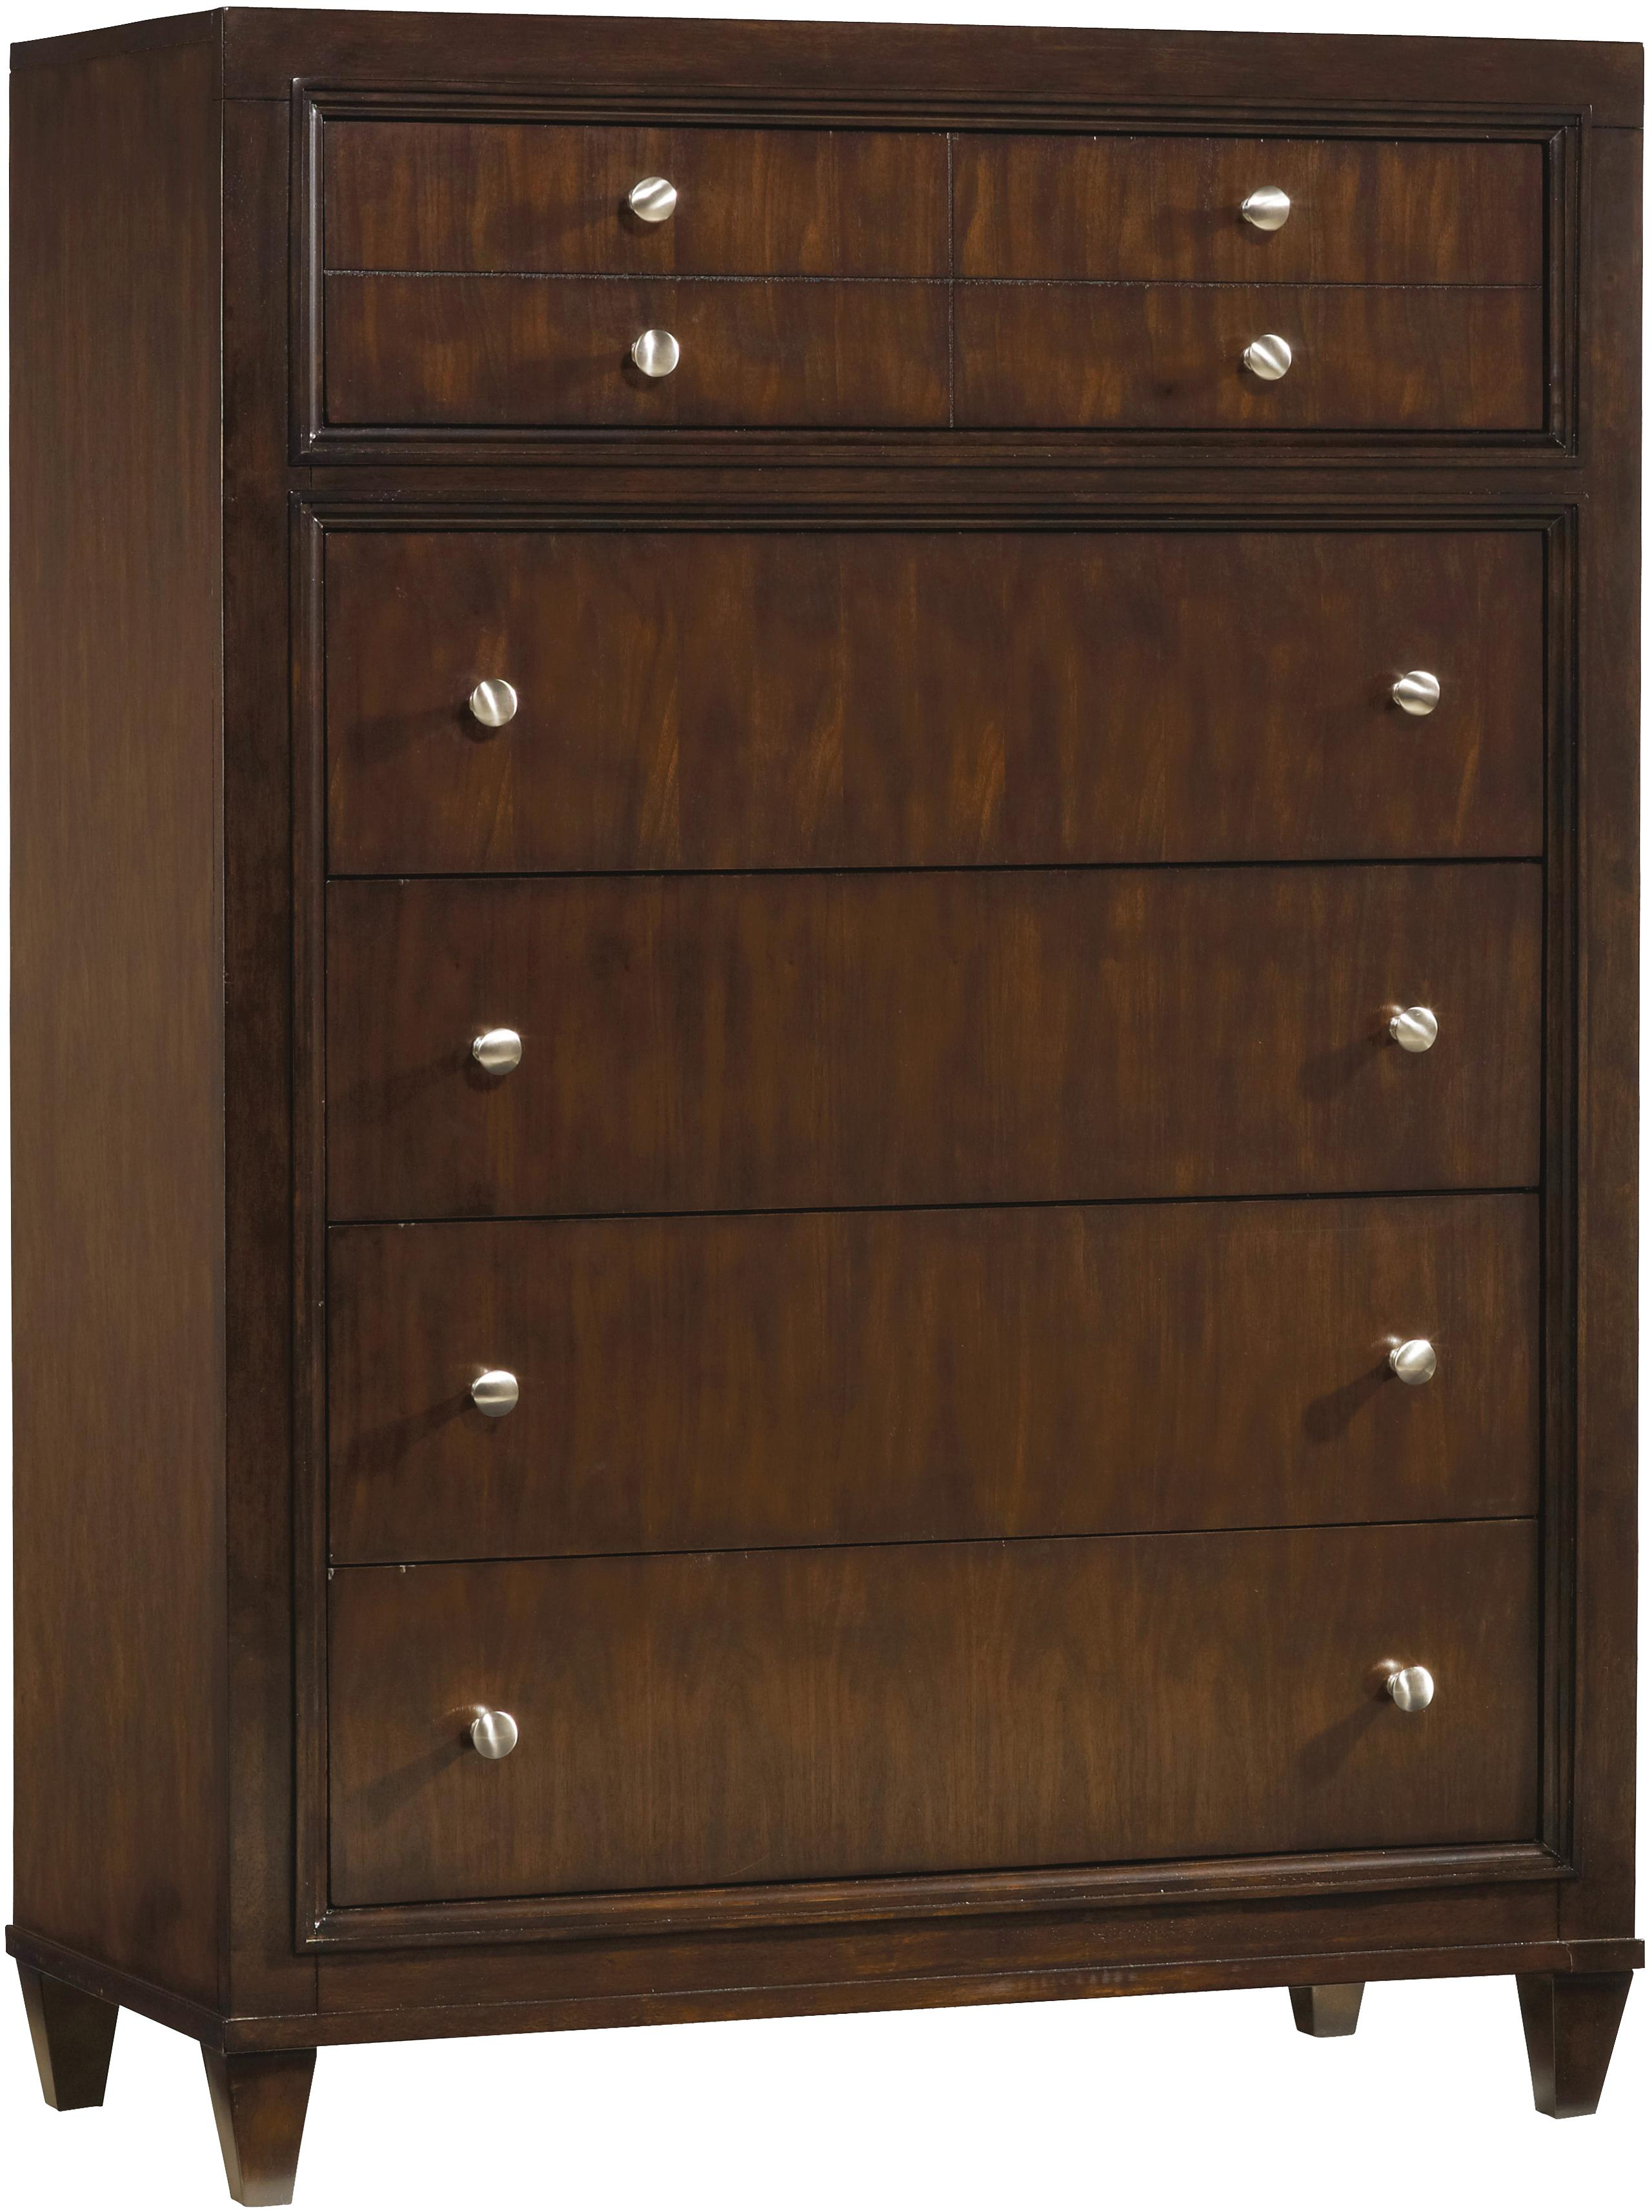 Hooker Furniture Ludlow Chest - Item Number: 1030-91010